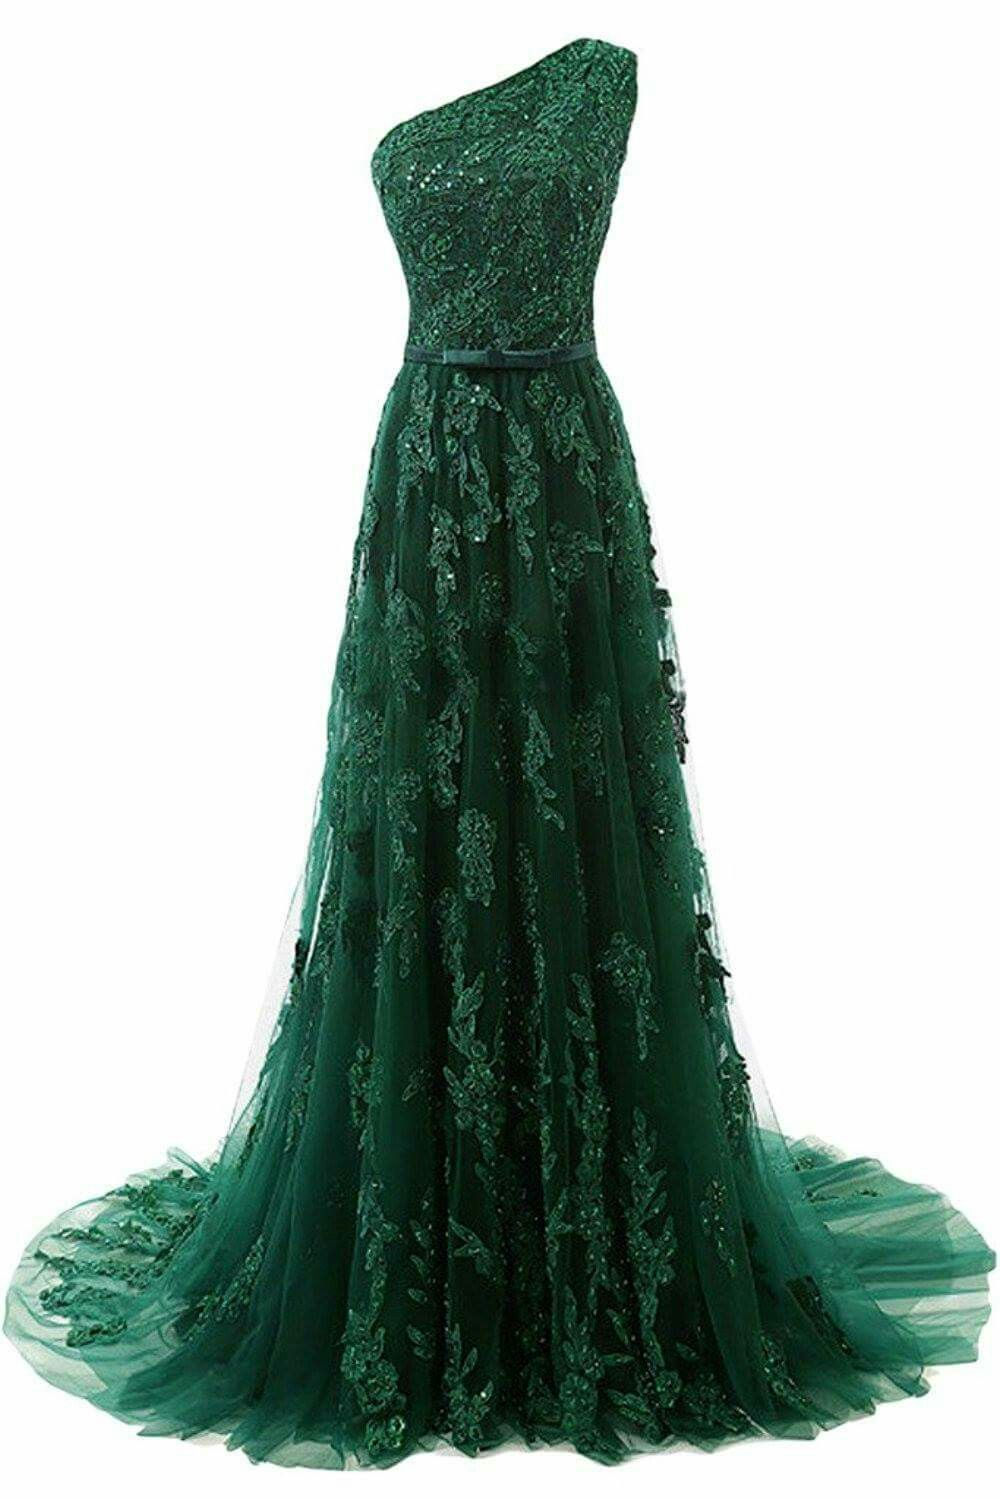 Pin by rajeev on gowne pinterest gowns prom and formal